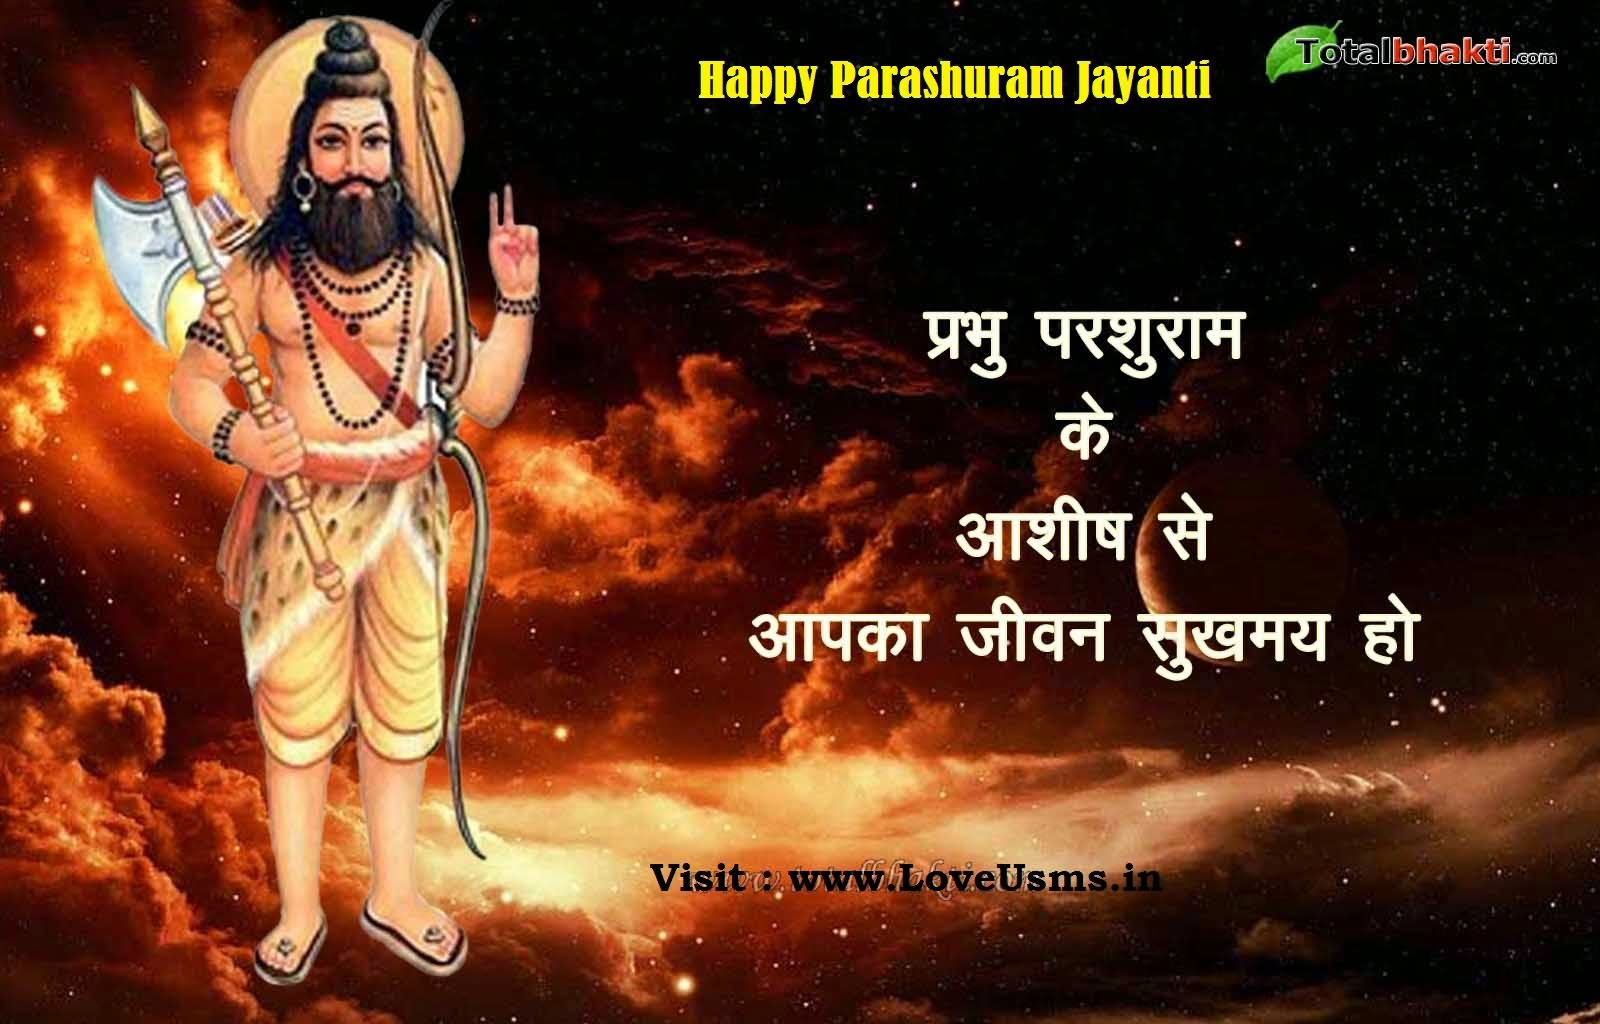 Viraha Nisadas: 15 Wonderful Images And Photos Of The Parshuram Jayanti Wishes